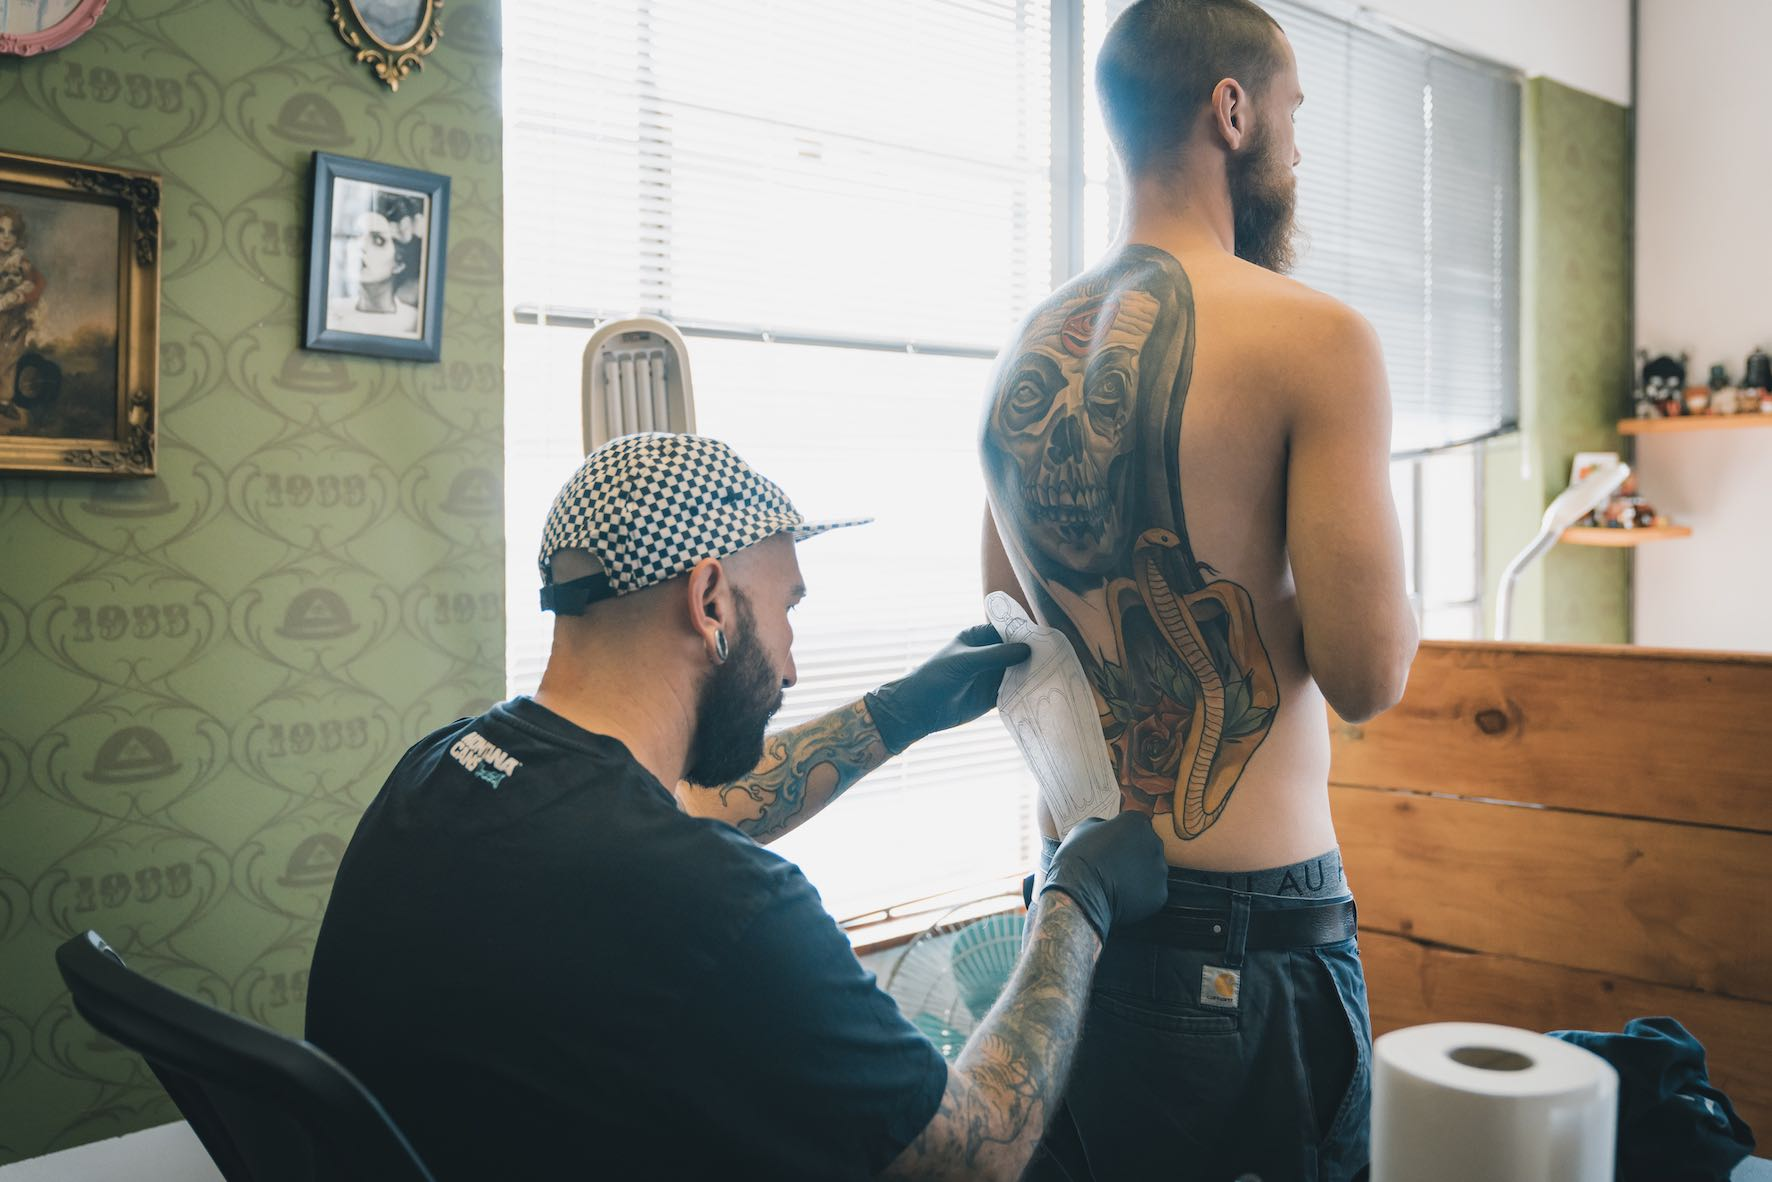 Ronald Jacobs preparing to tattoo a client